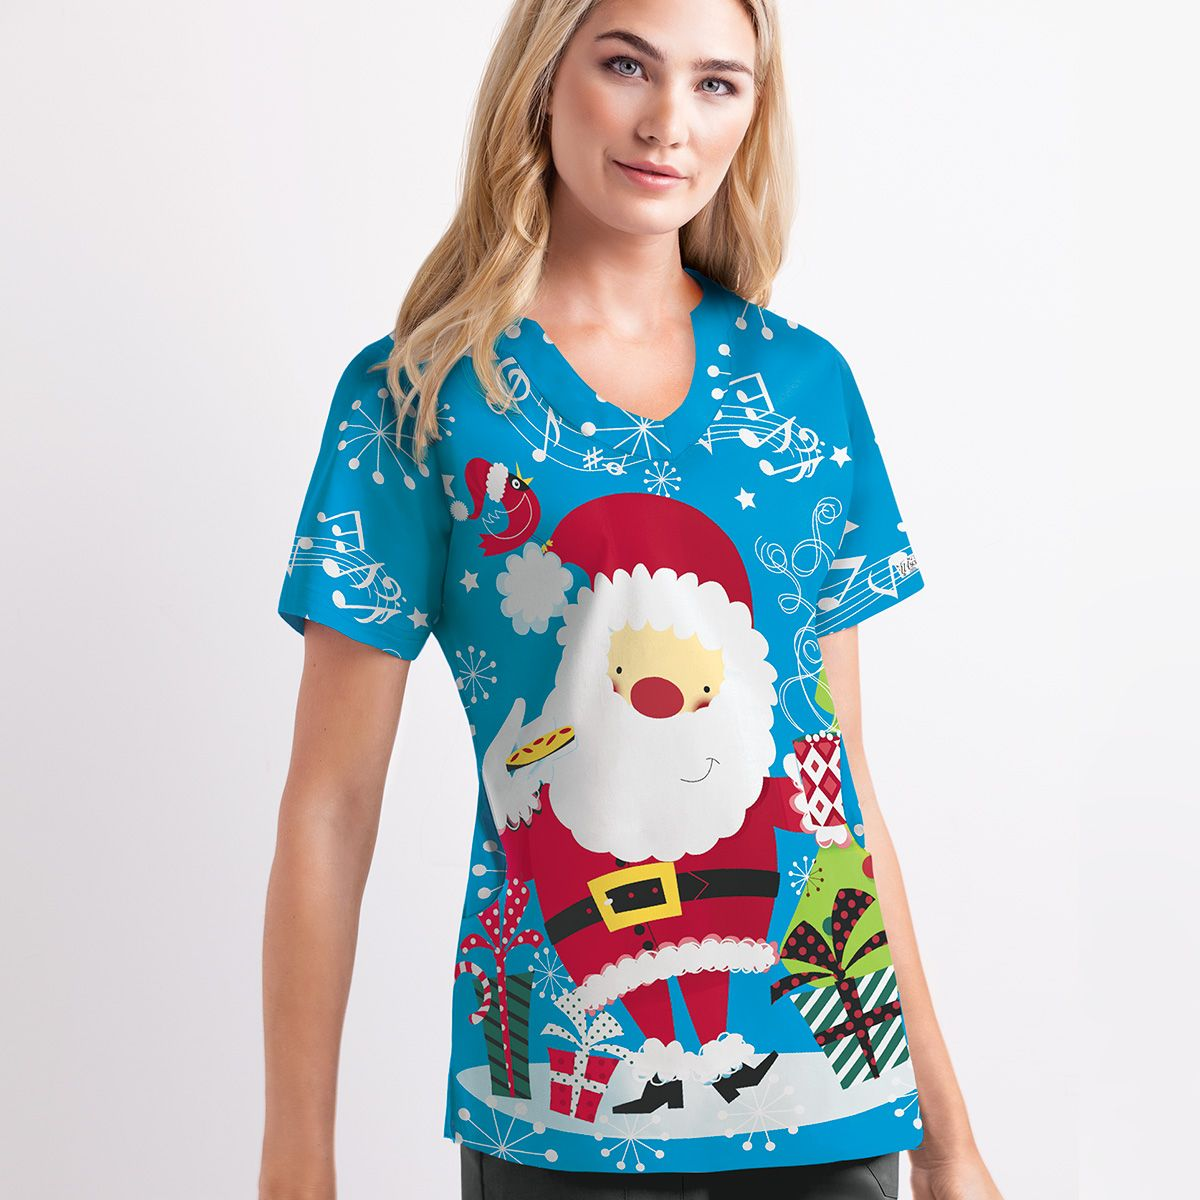 Sleigh in the holiday cheer! | Christmas scrubs, Stylish ...